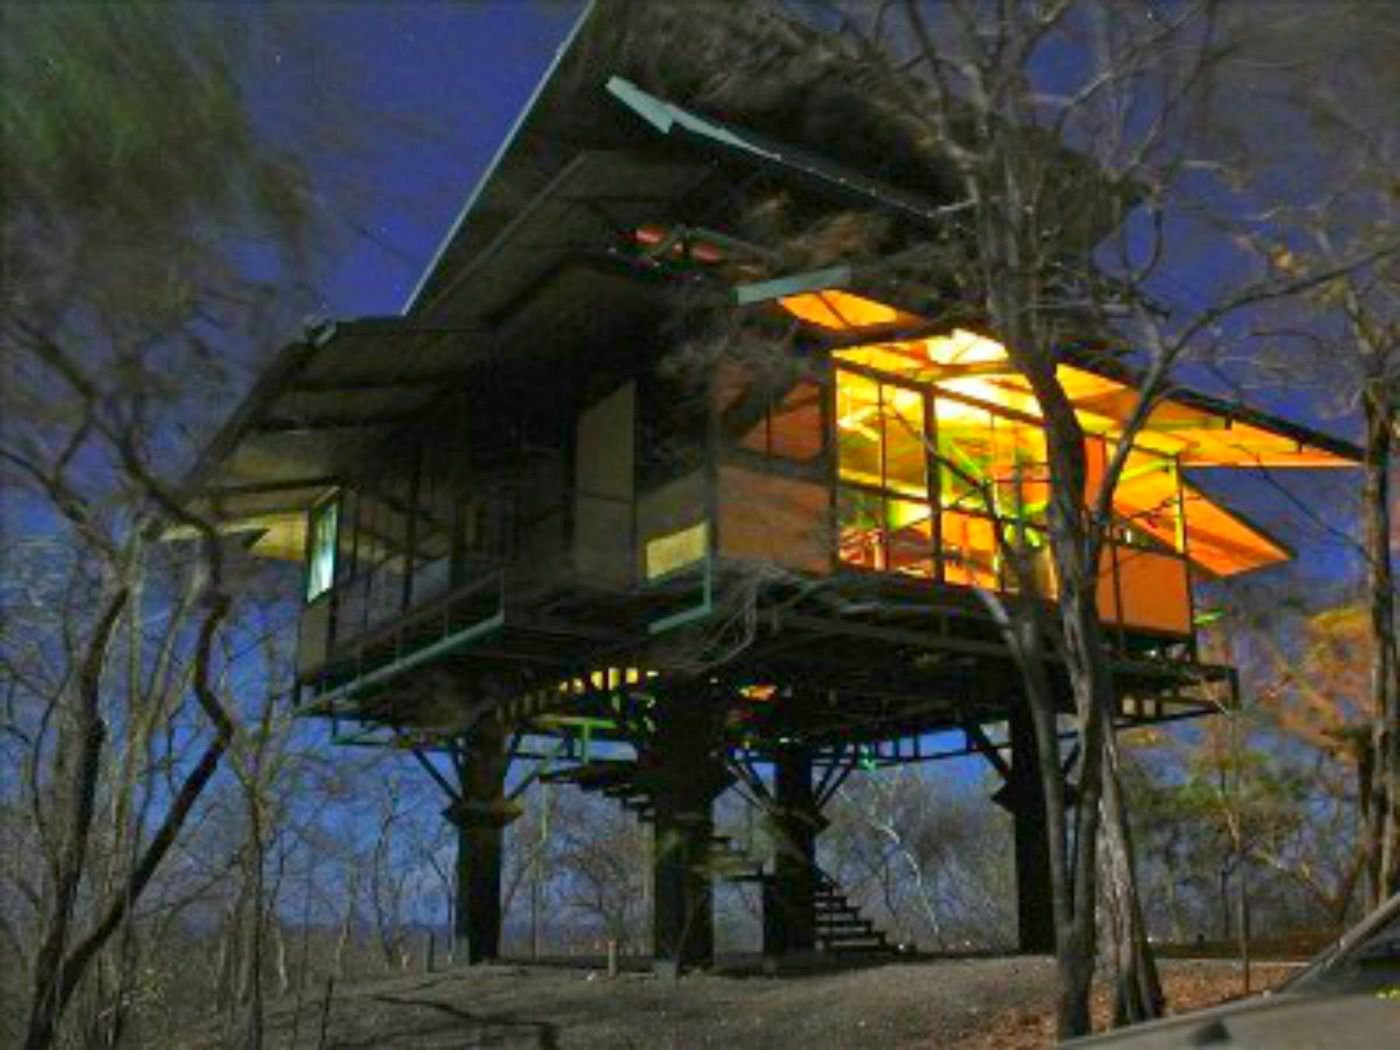 Safety Car Rental 6 Lofty Treehouse Vacation Homes You Can Rent